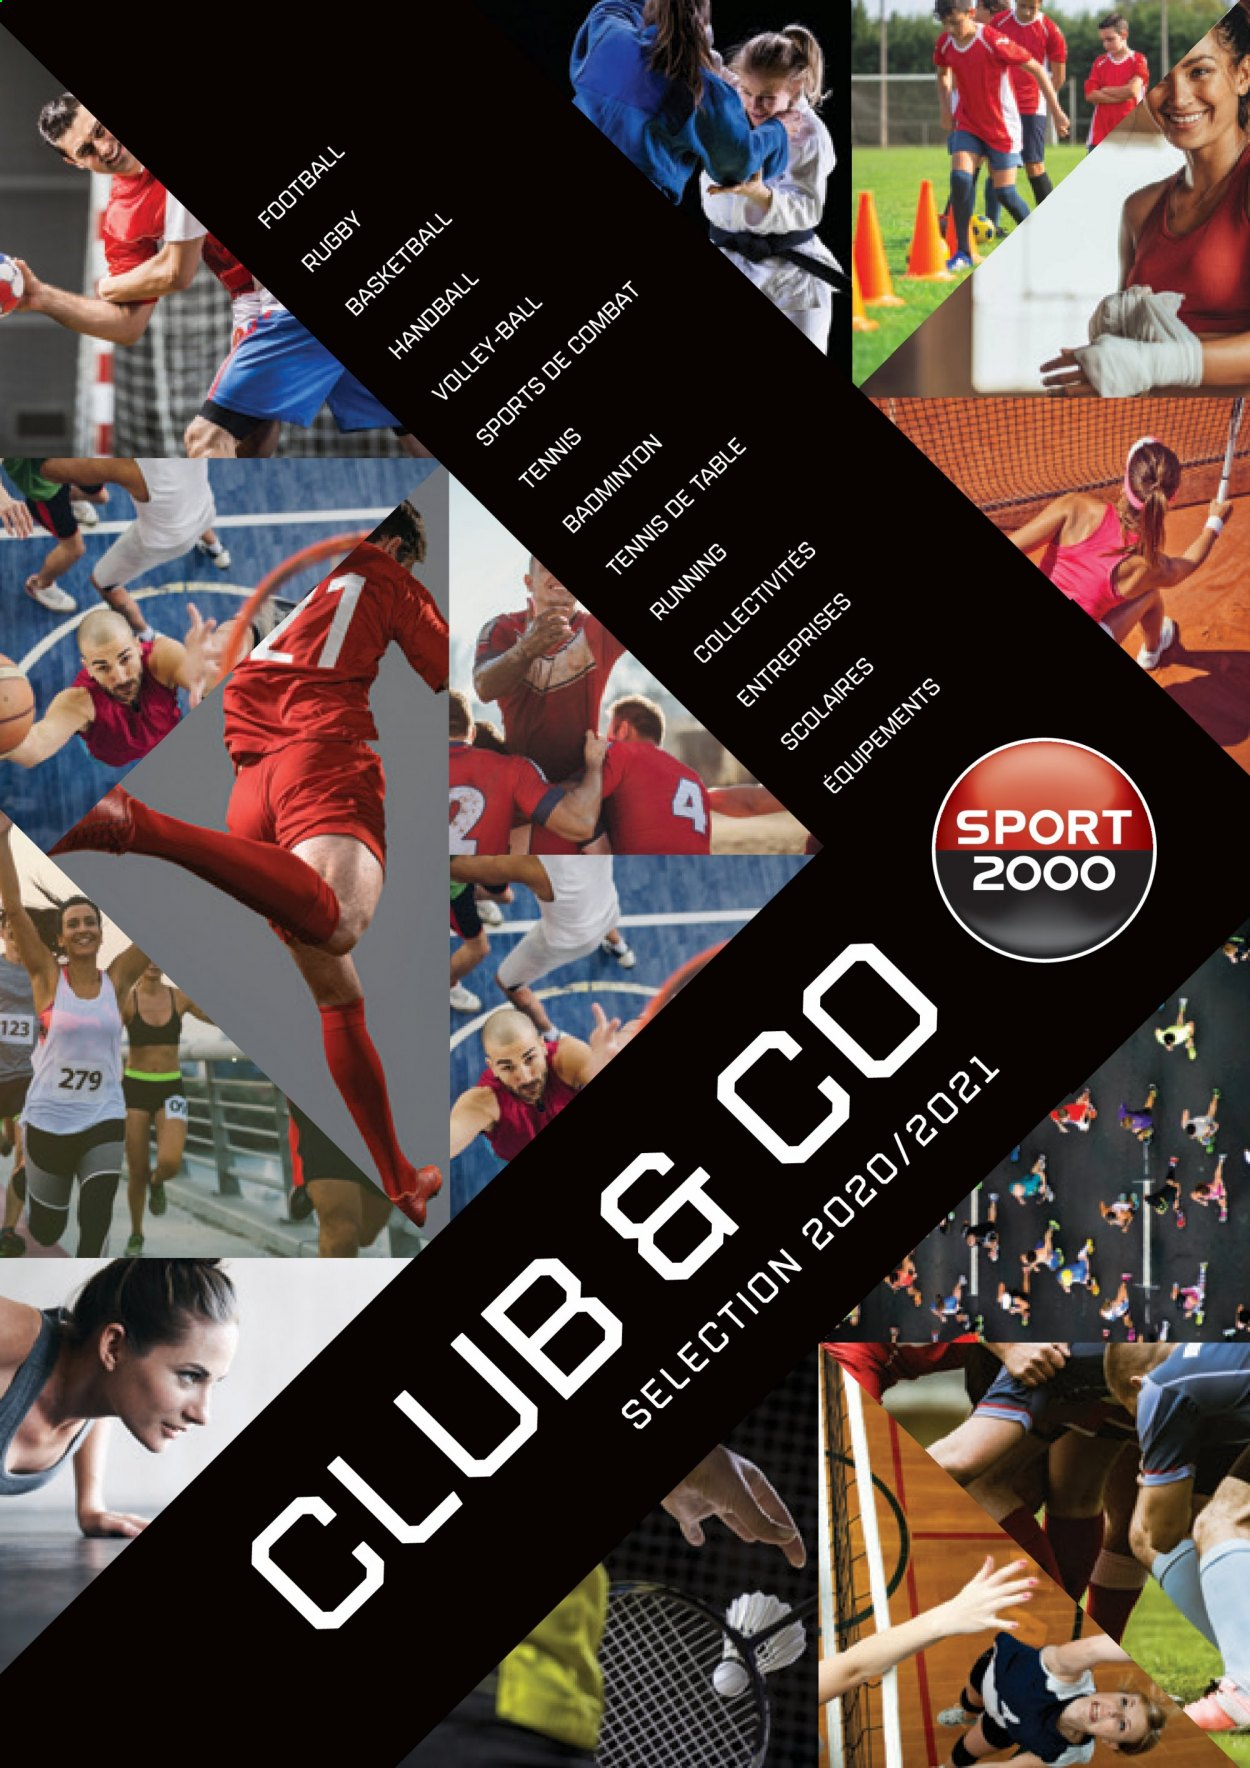 Catalogue Sport 2000 - Produits soldés - tennis, running. Page 1.